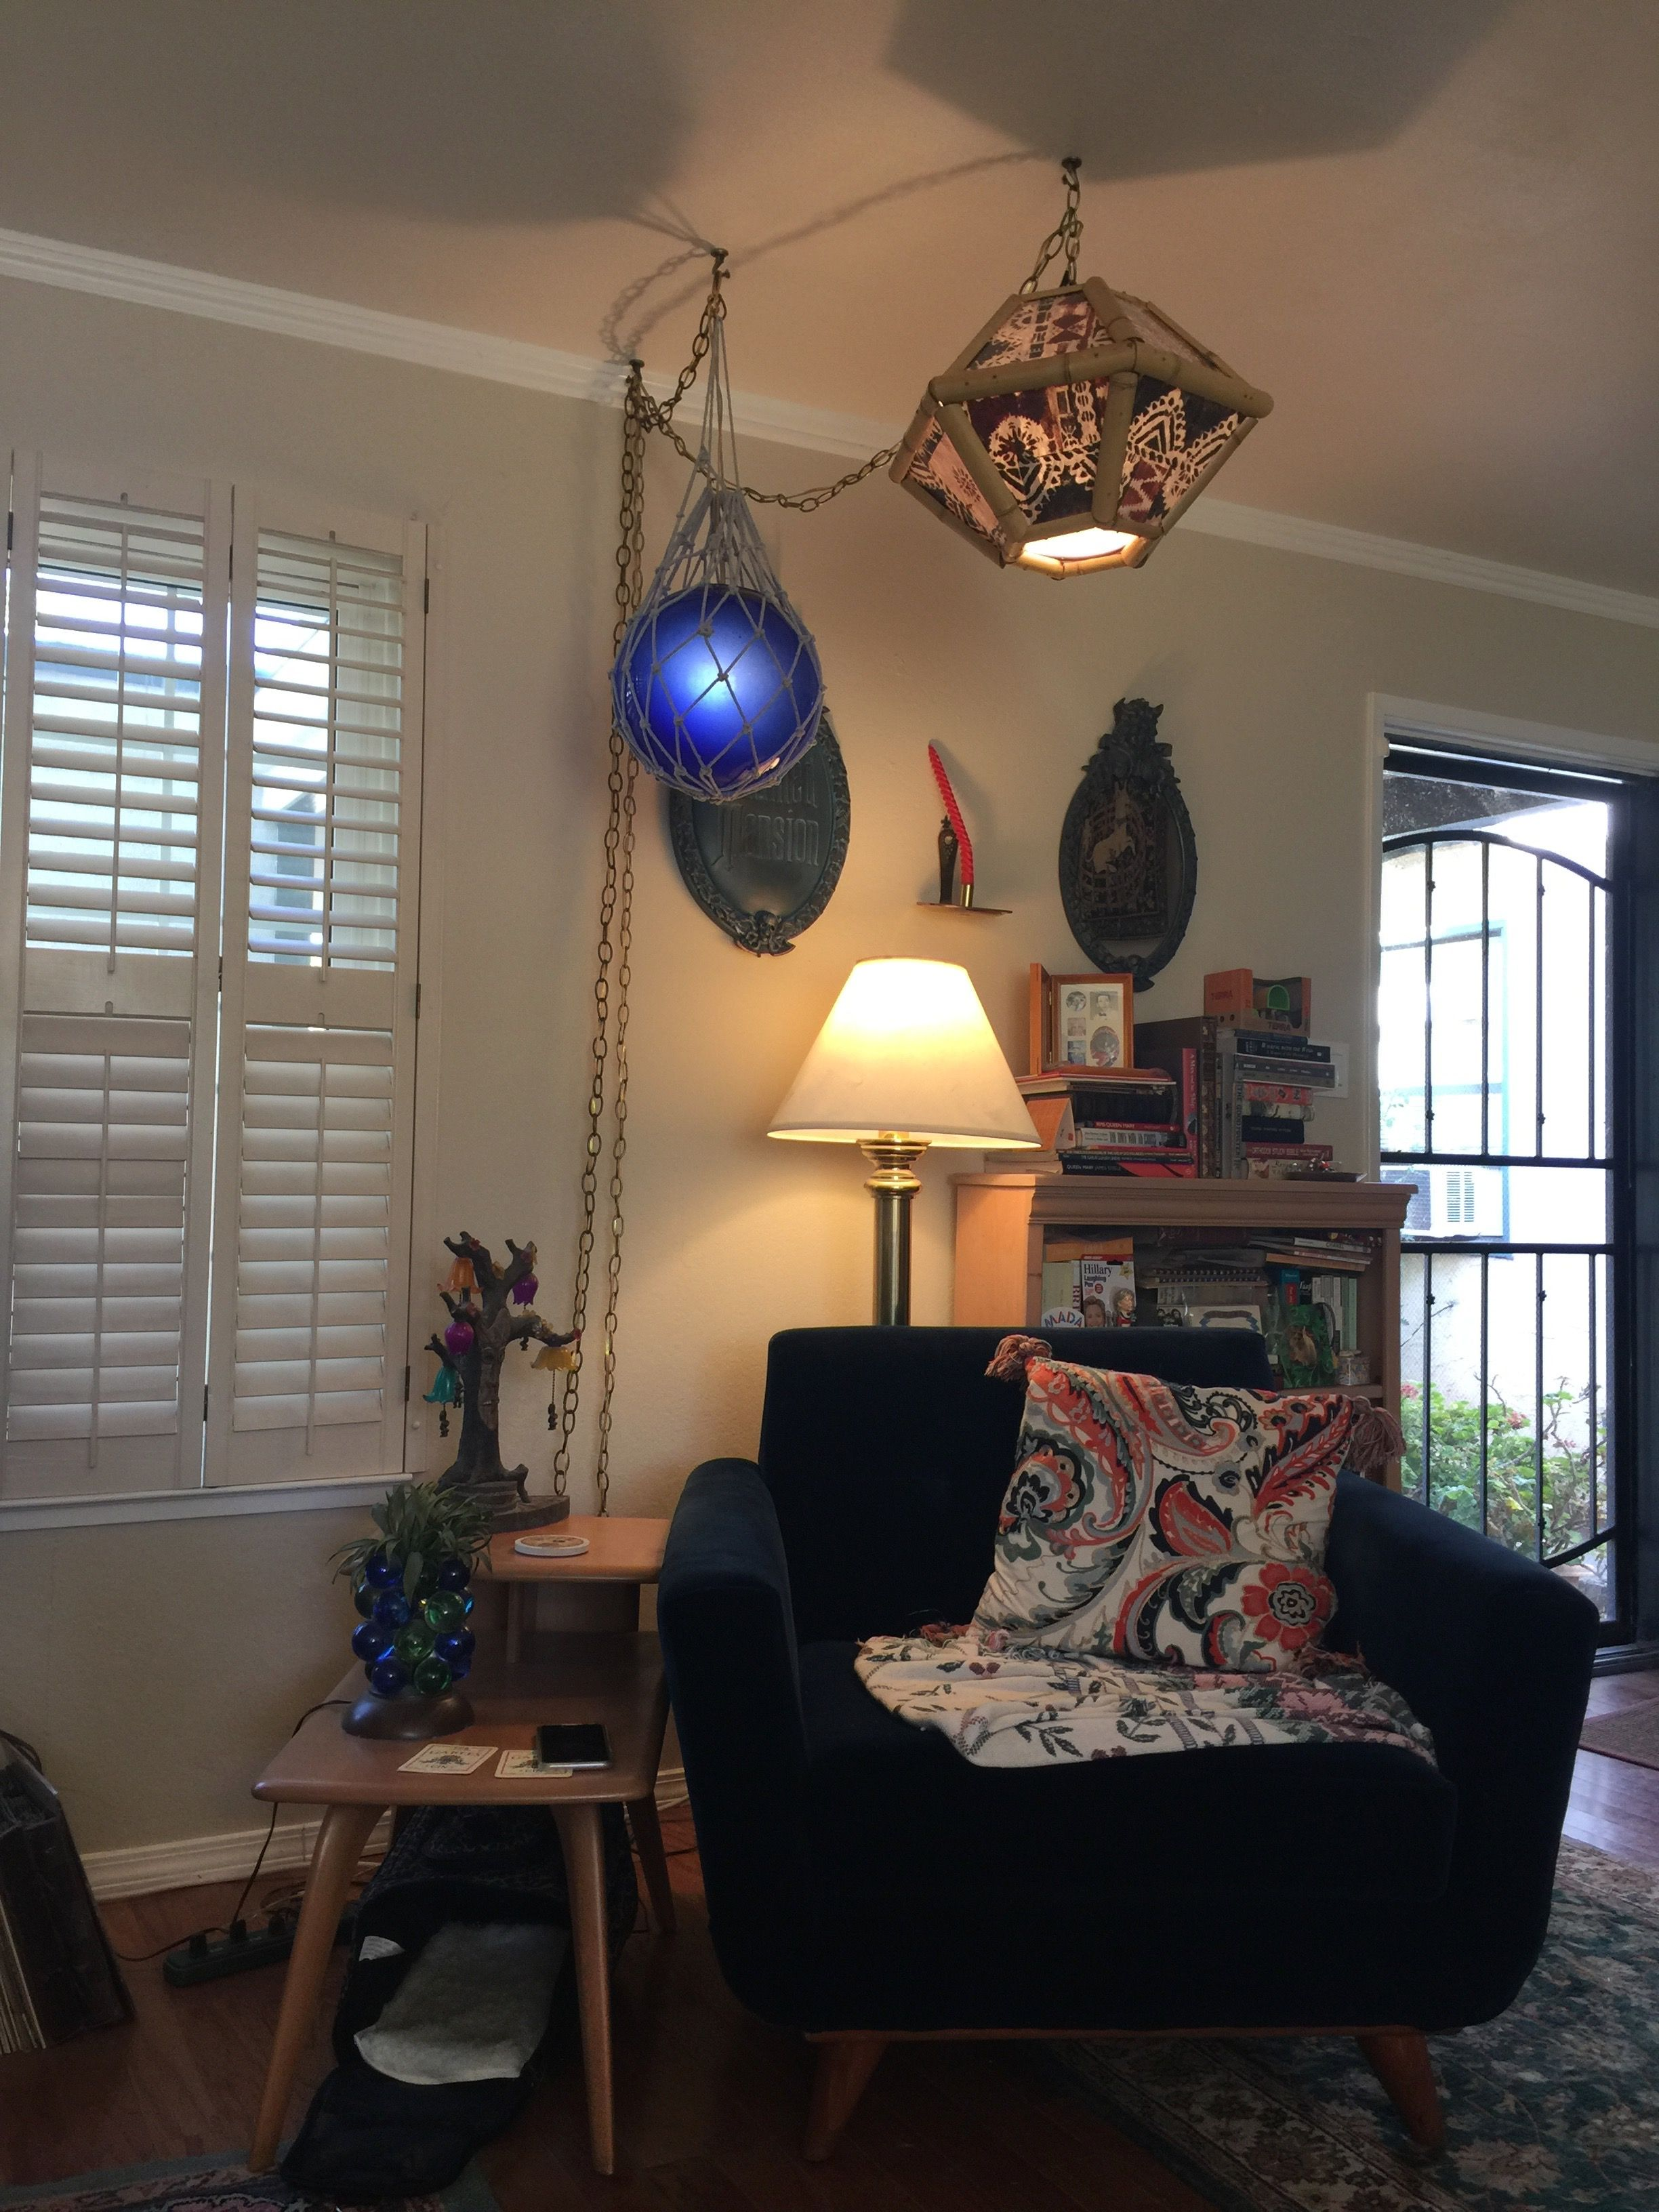 I blog about my new Joybird Hughs sofa and chair, Oceanic Arts lamps, and my grandmother's Heywood Wakefield!  http://www.strangegirl.com/2018/01/28/im-back-with-midcentury-home-furnishings-oceanic-arts-lamps-joybird-and-my-grandmothers-heywood-wakefield/